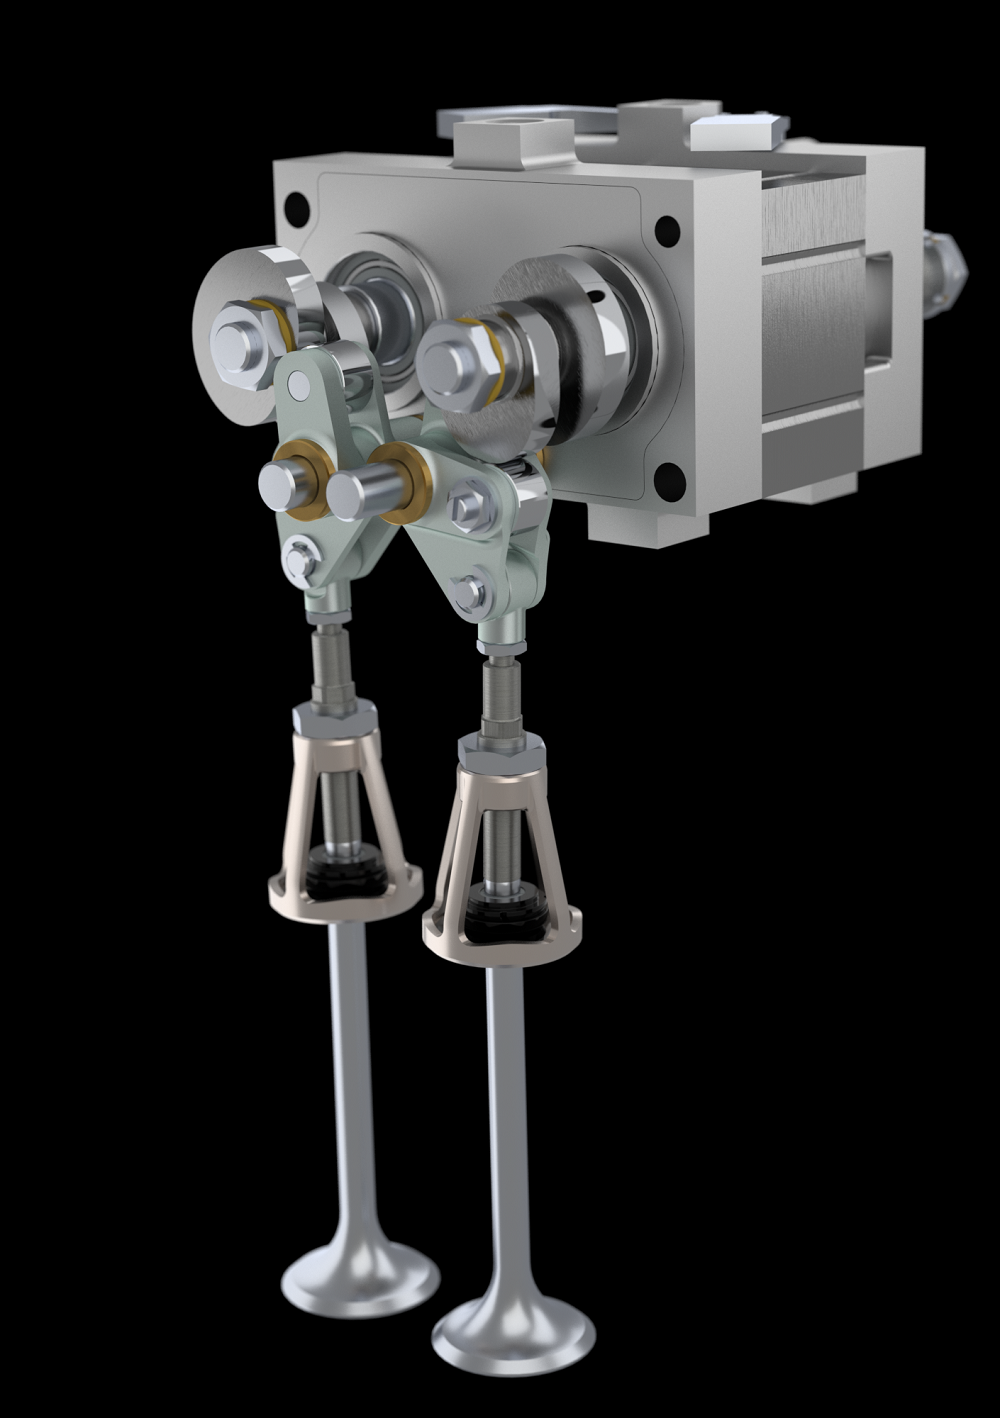 Camcon's valve actuation system